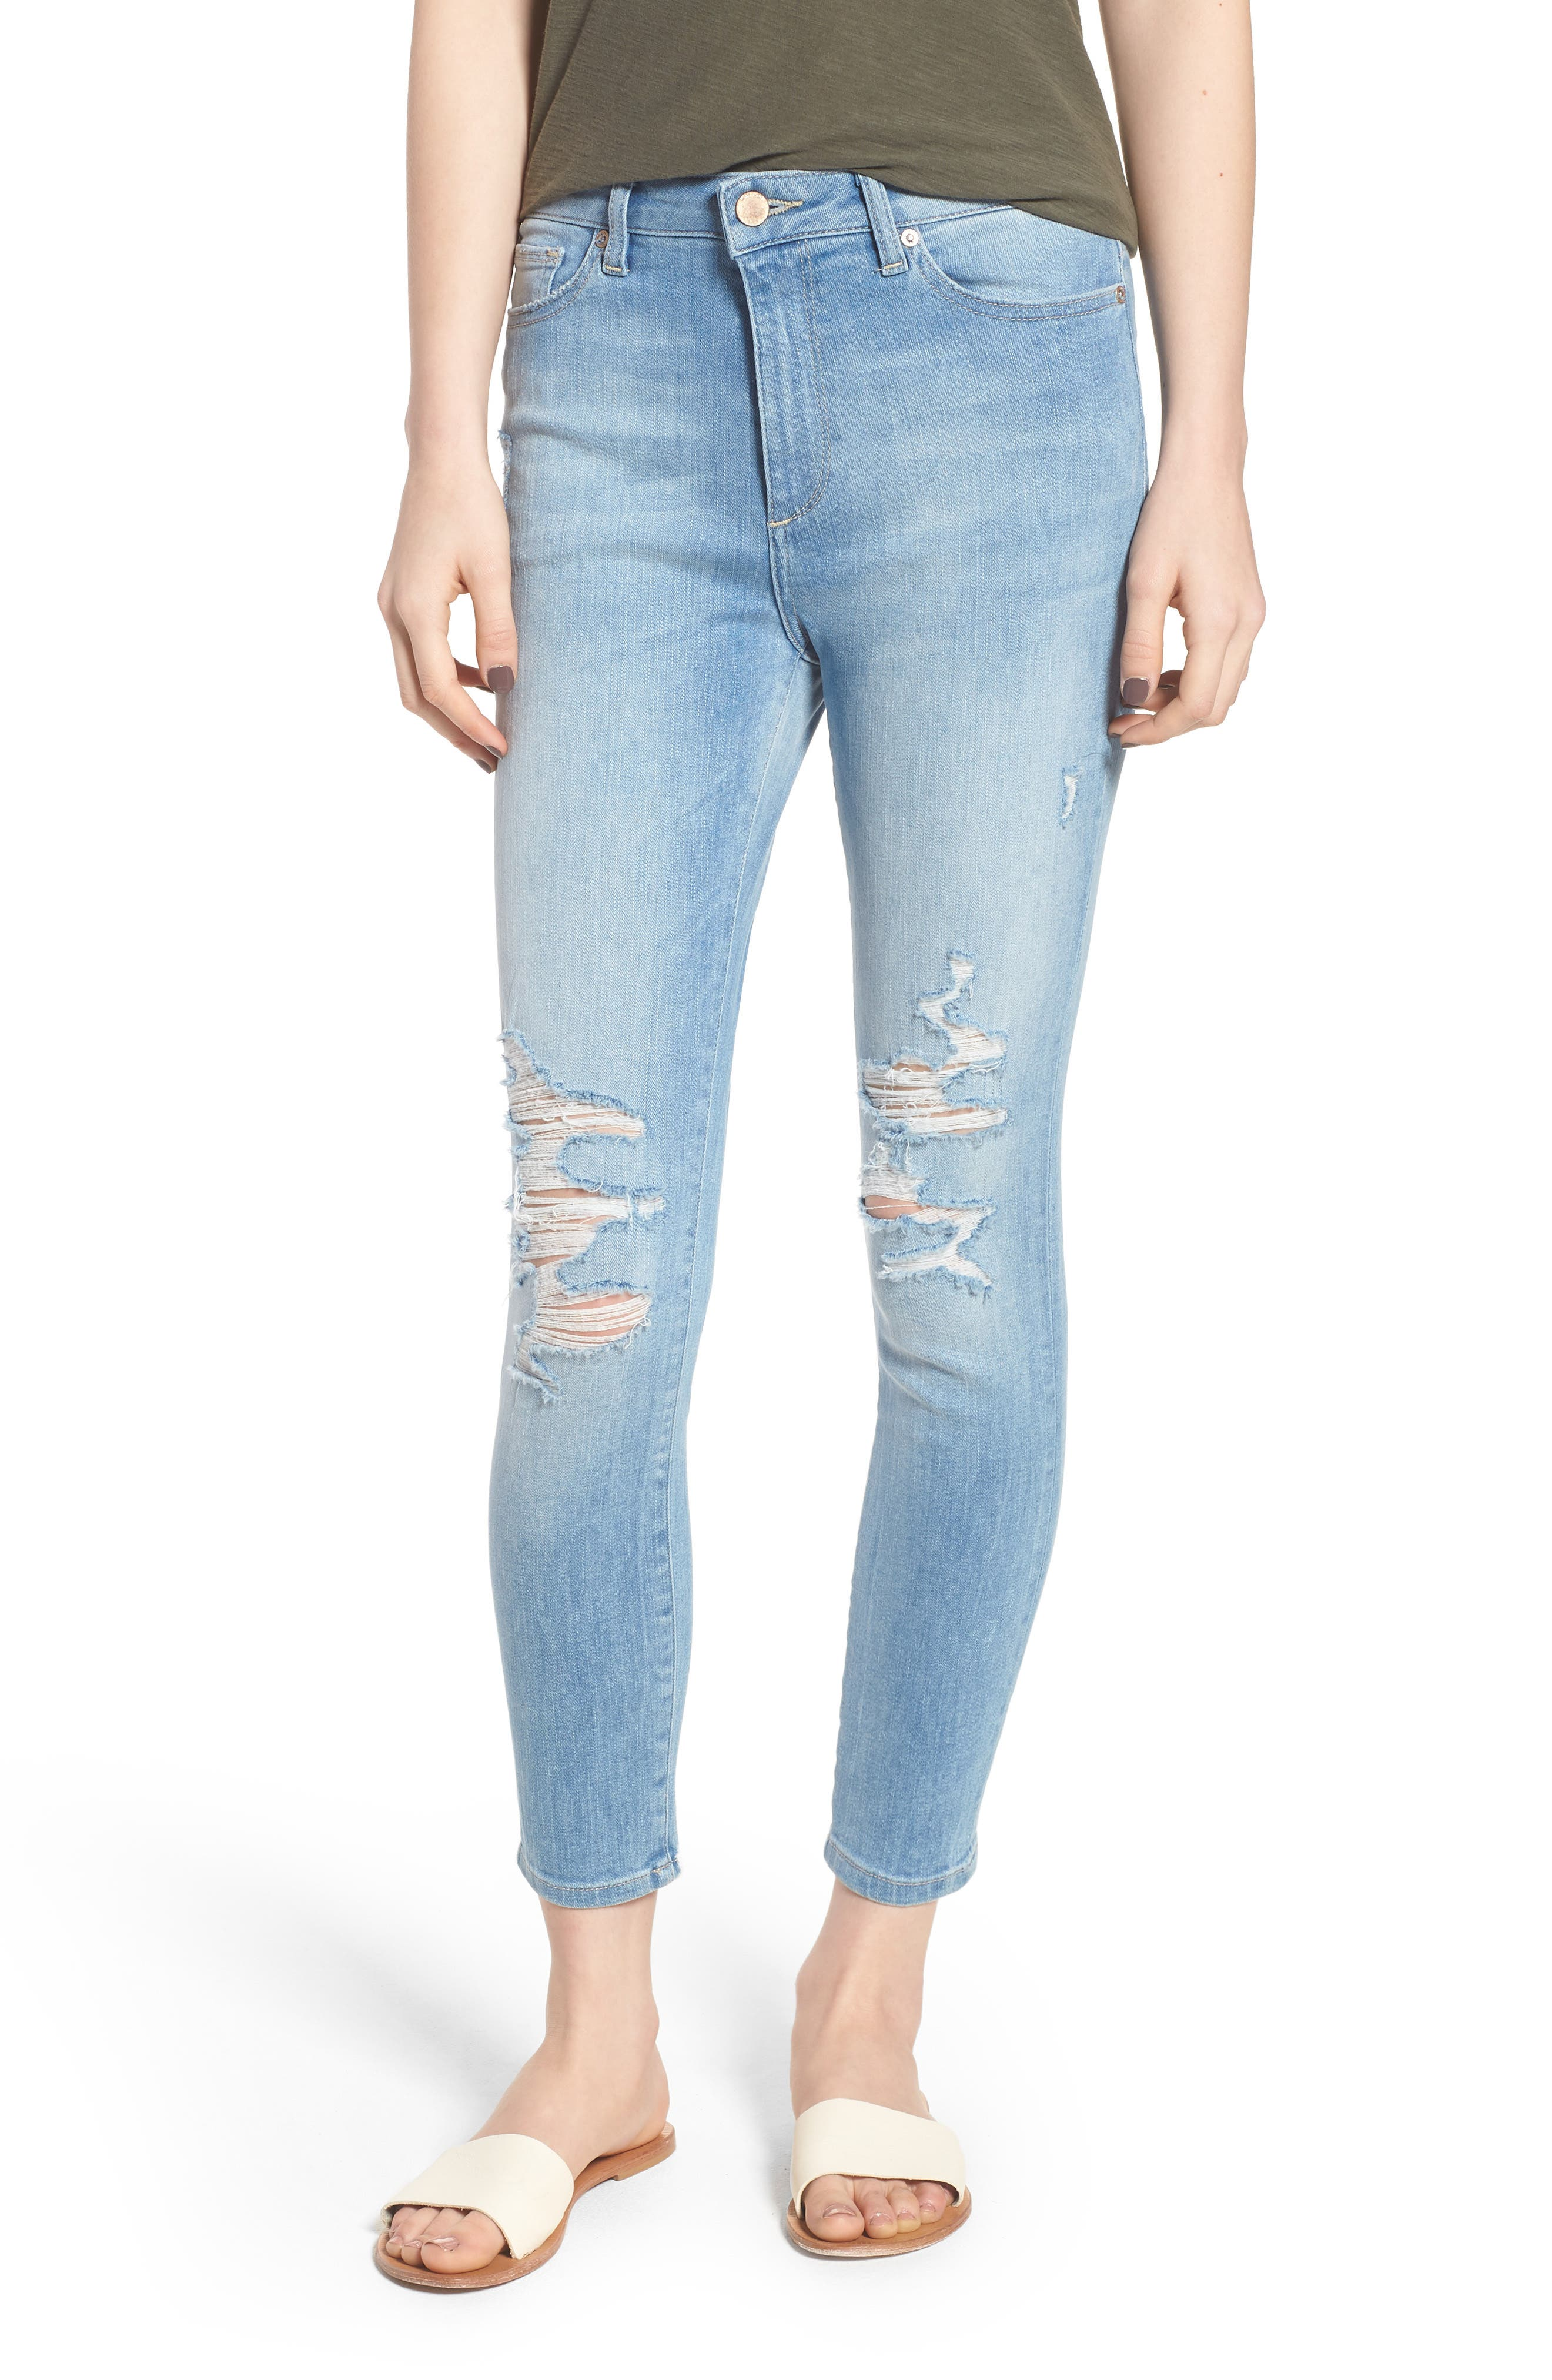 Alternate Image 1 Selected - DL1961 Chrissy Trimtone Ripped High Waist Skinny Jeans (Walker)